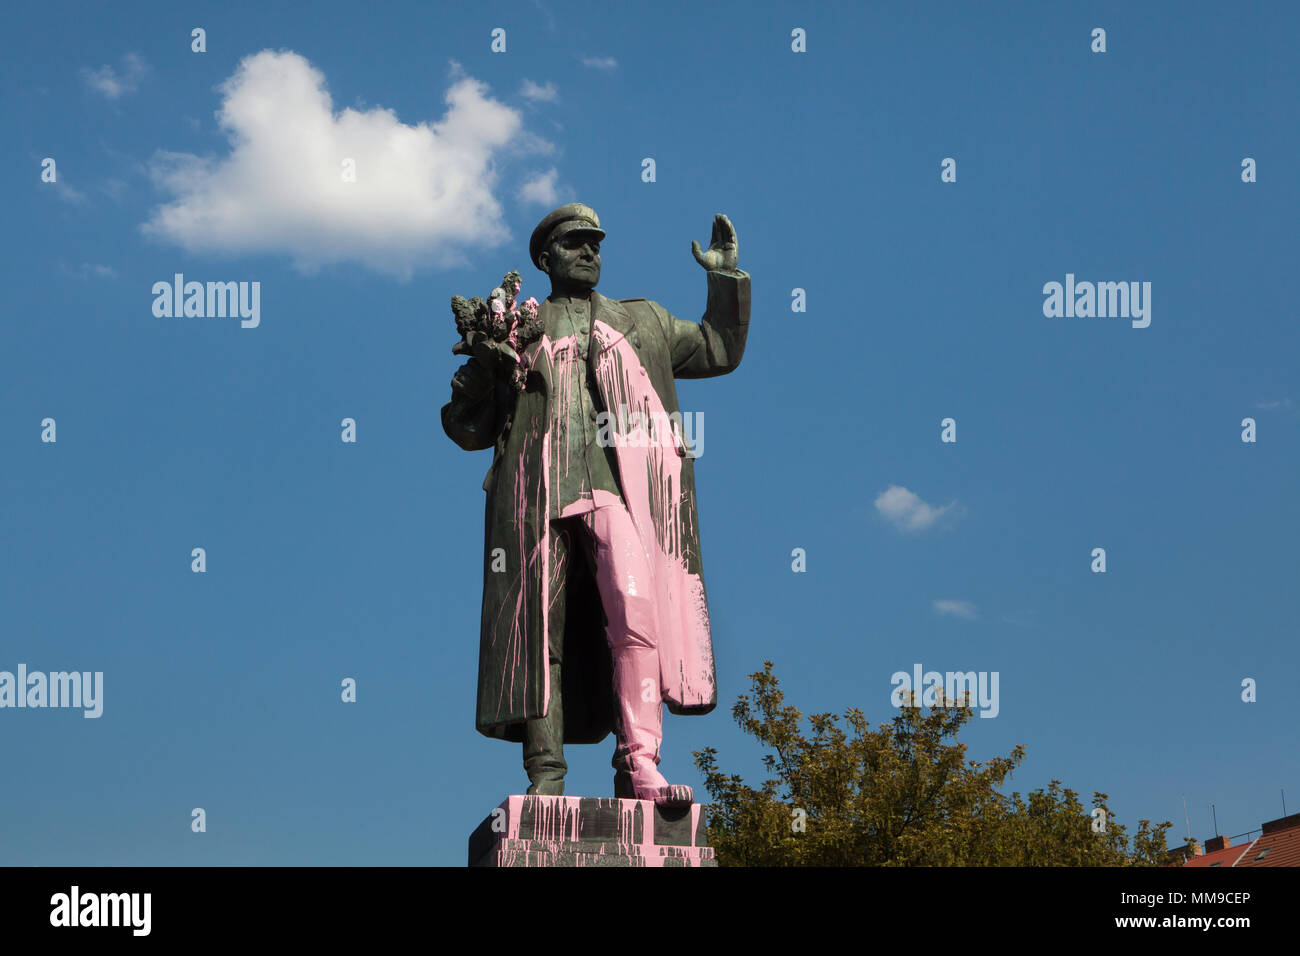 Monument to Soviet military commander Ivan Konev vandalised with pink paint in Prague, Czech Republic, on 8 May 2018. Bronze statue by Czech sculptor Zdeněk Krybus was unveiled in 1980 in Dejvice district to commemorate the liberation of Prague by the 1st Ukrainian Front of the Red Army under command of Ivan Konev in May 1945 in the last days of World War II. - Stock Image